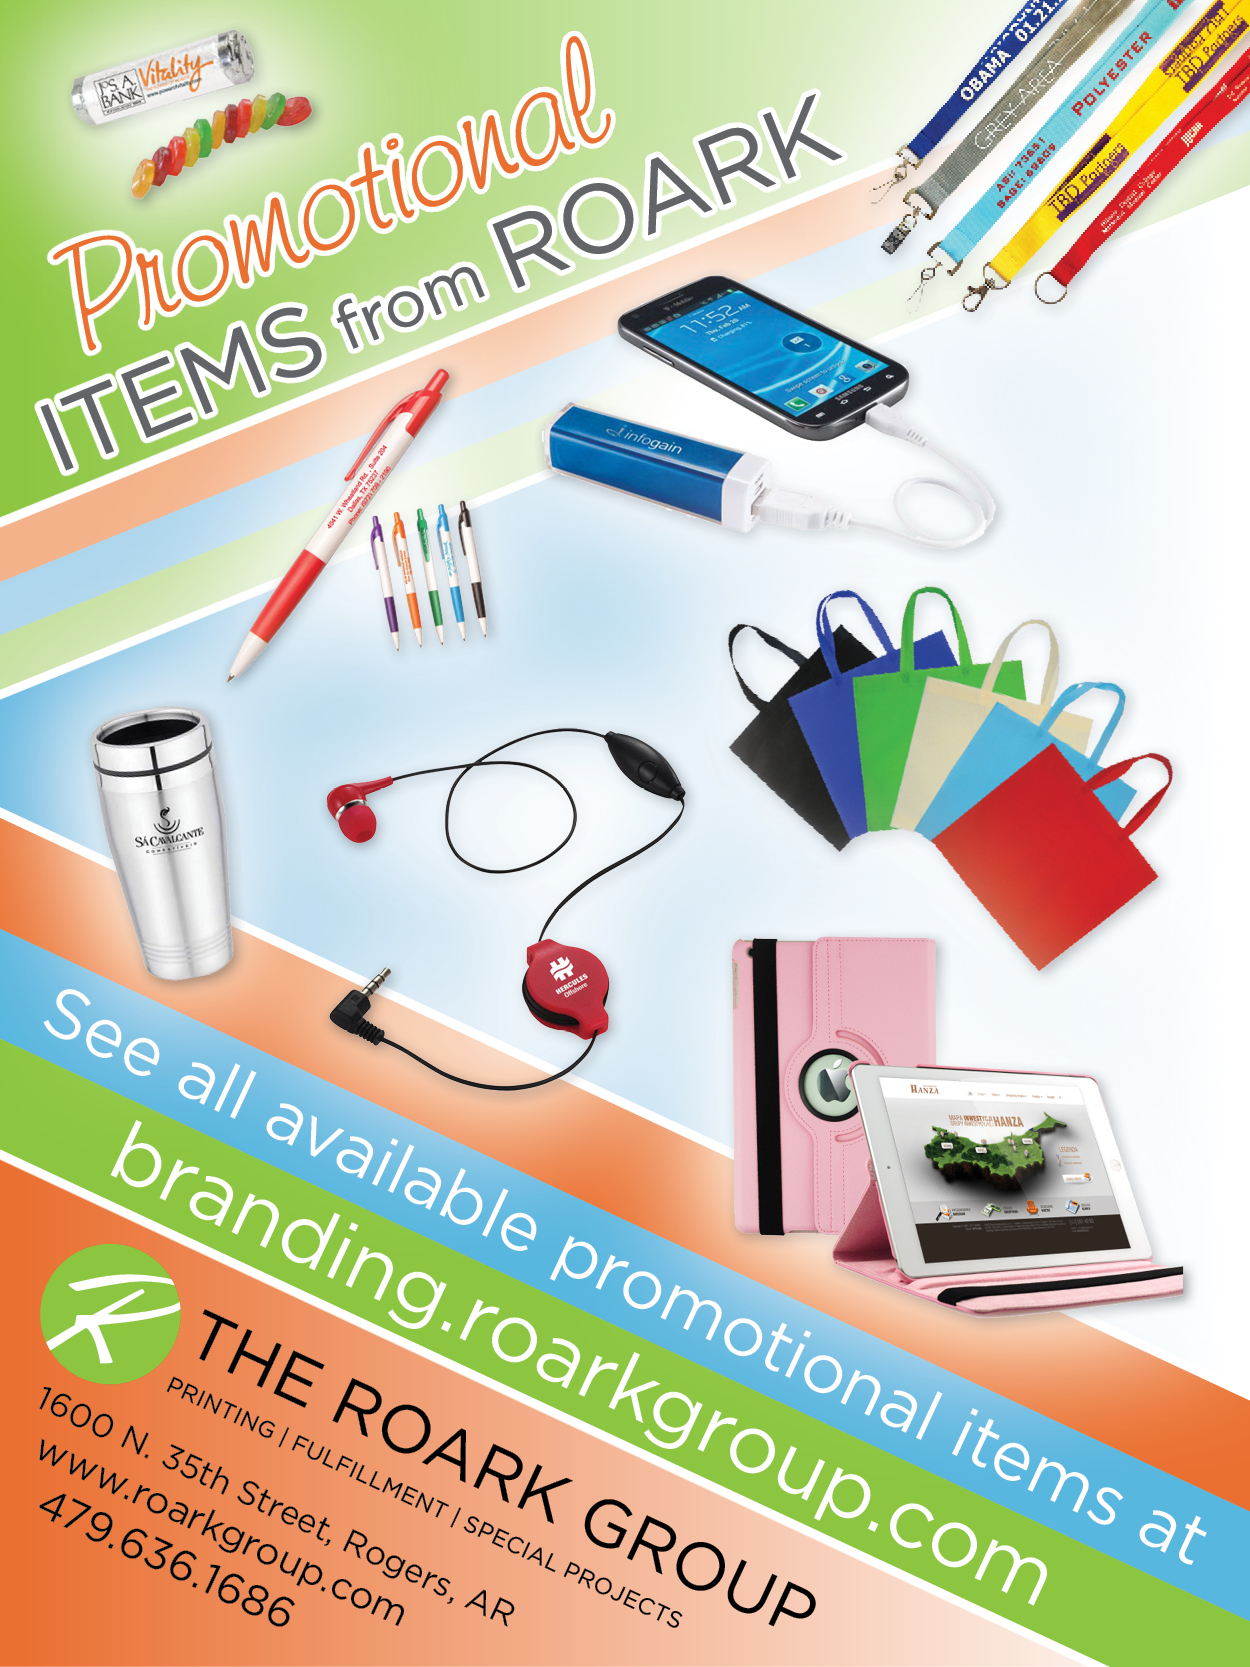 RoArk Promotional Items